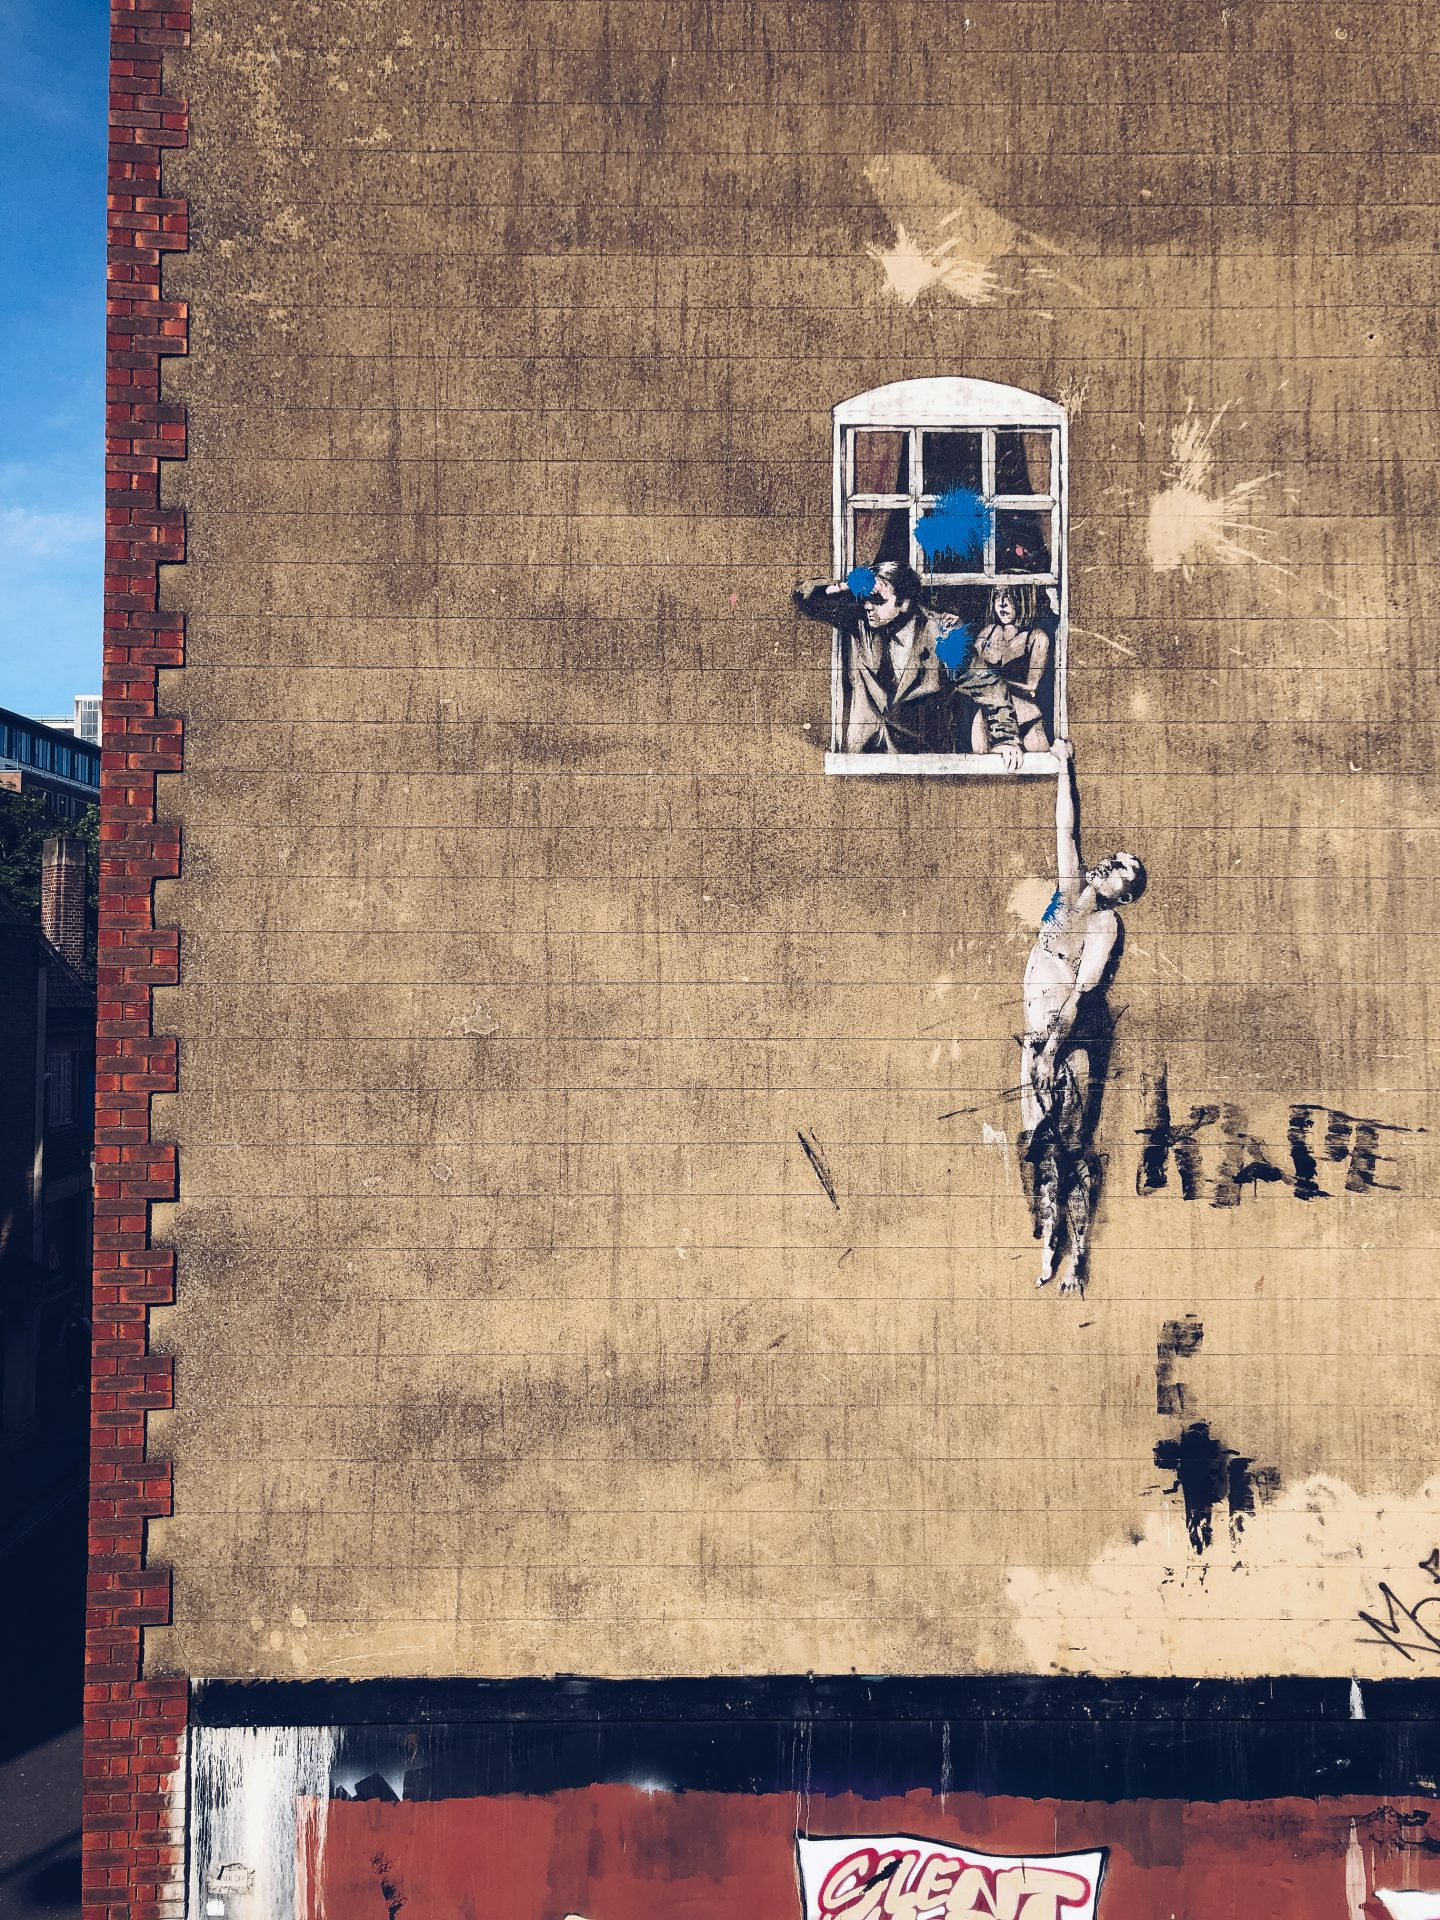 banksy's hanged man is on the side of tall brick building and shows a window with a man looking out of it, his wife is behind him looking nervous and a naked man is hanging on my his hand to the windowsill